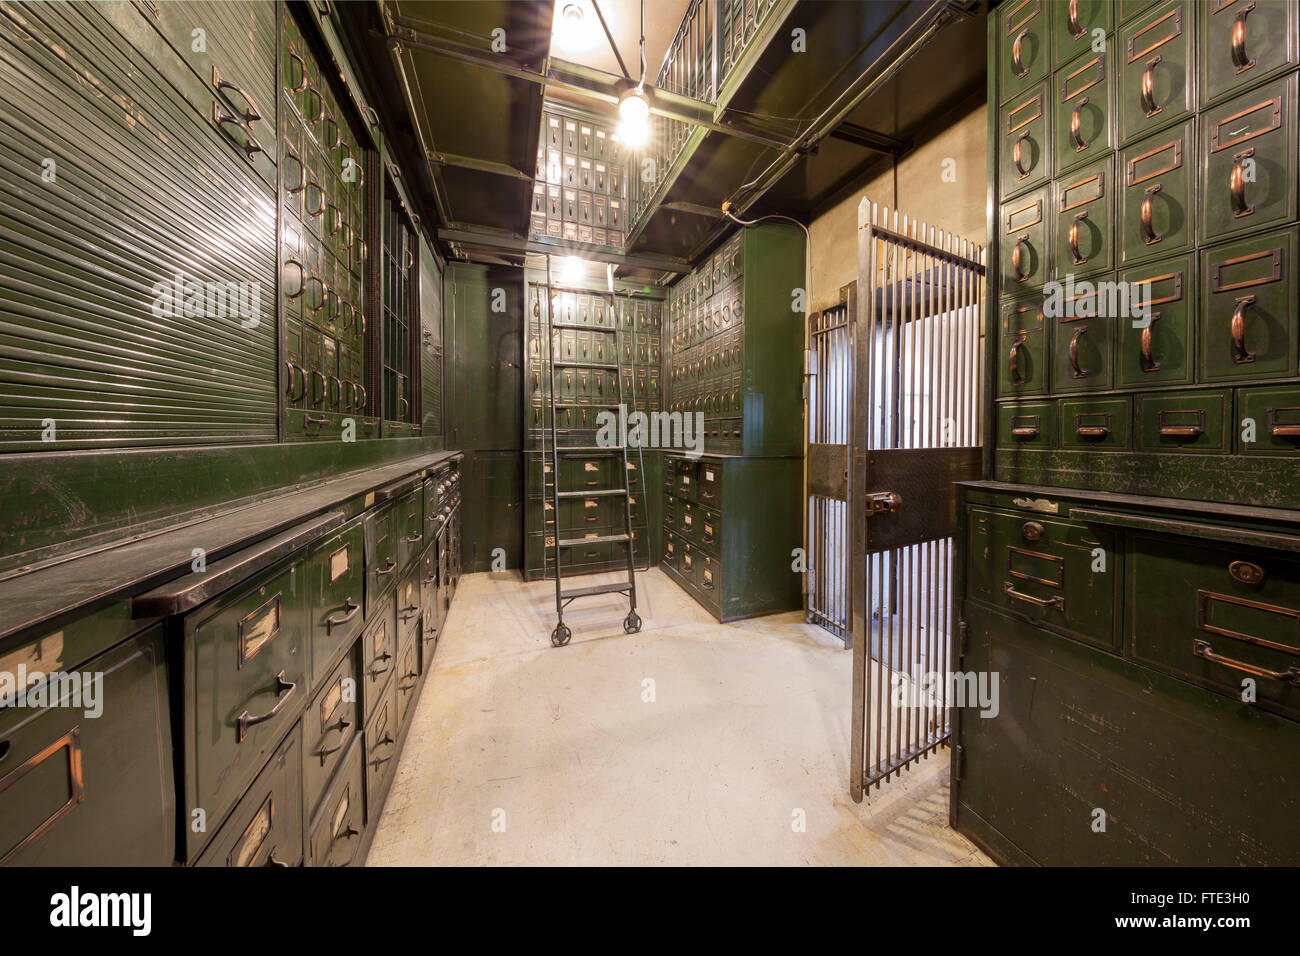 Old Bank Vault. - Stock Image